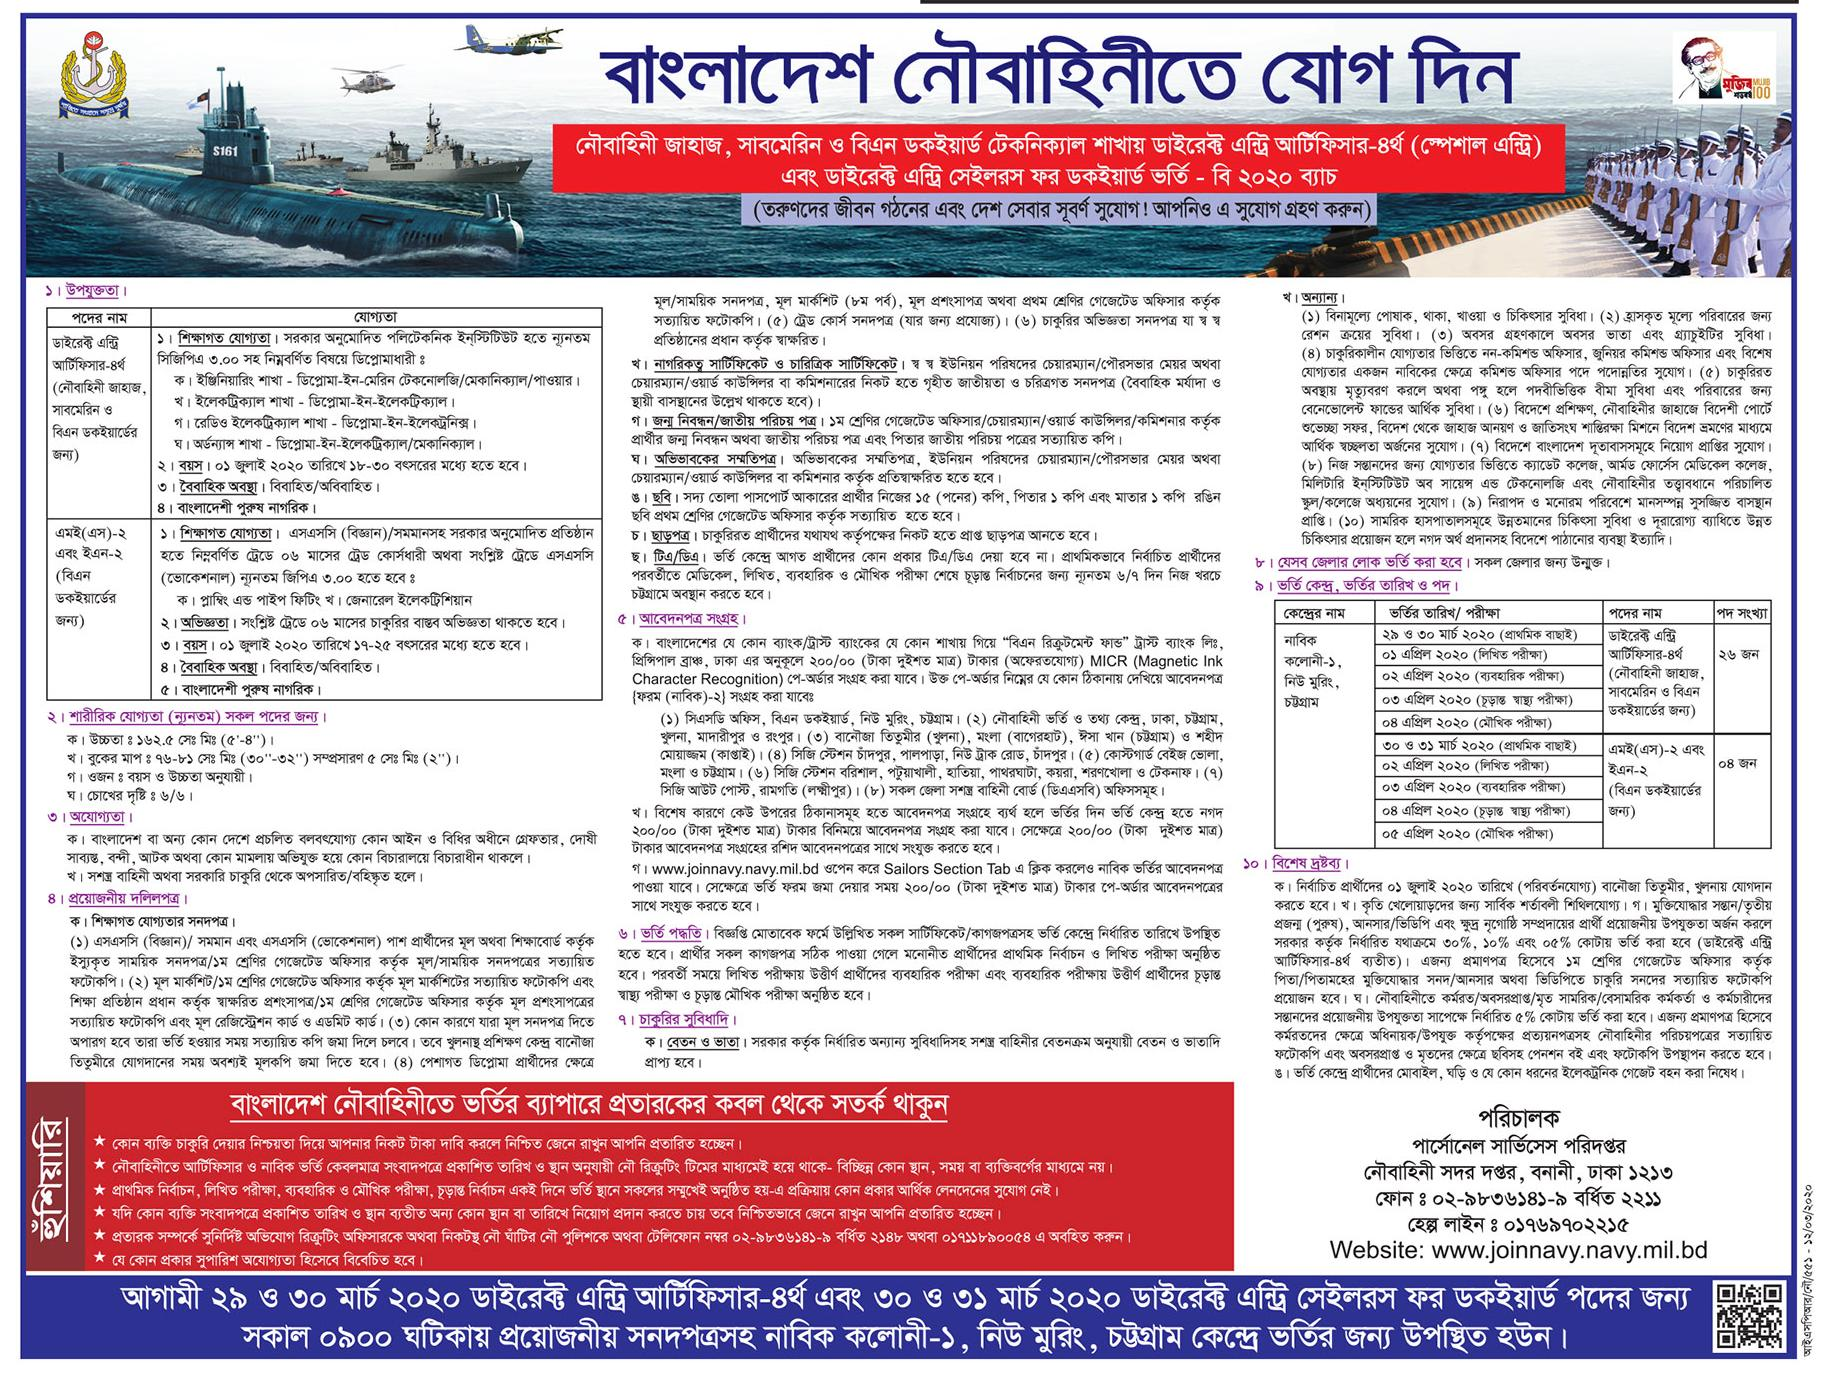 Bangladesh Navy latest job circular